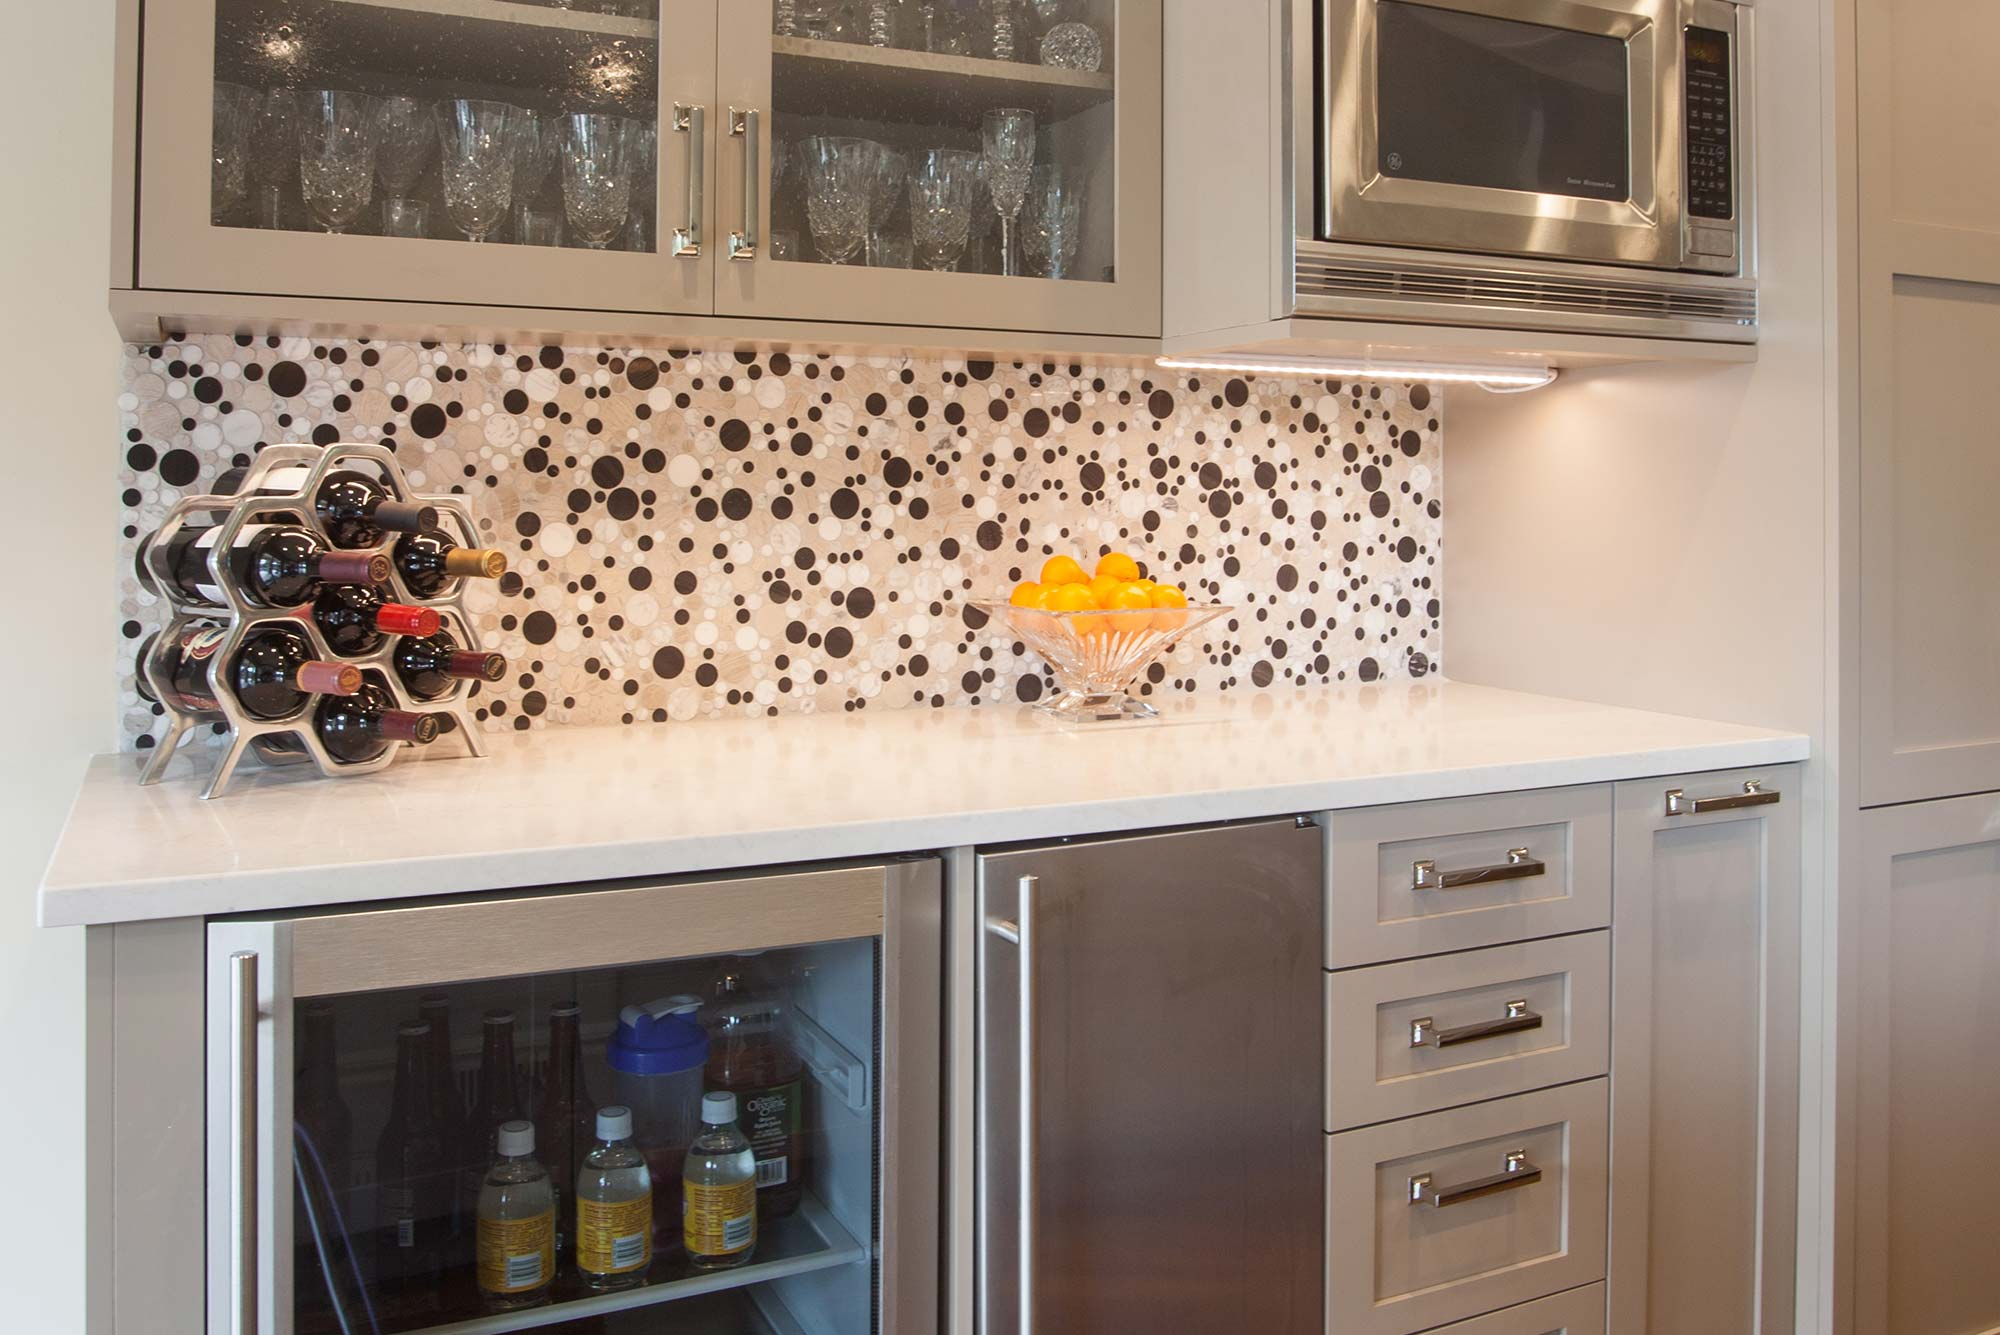 Open to Function large kitchen decorative backsplash